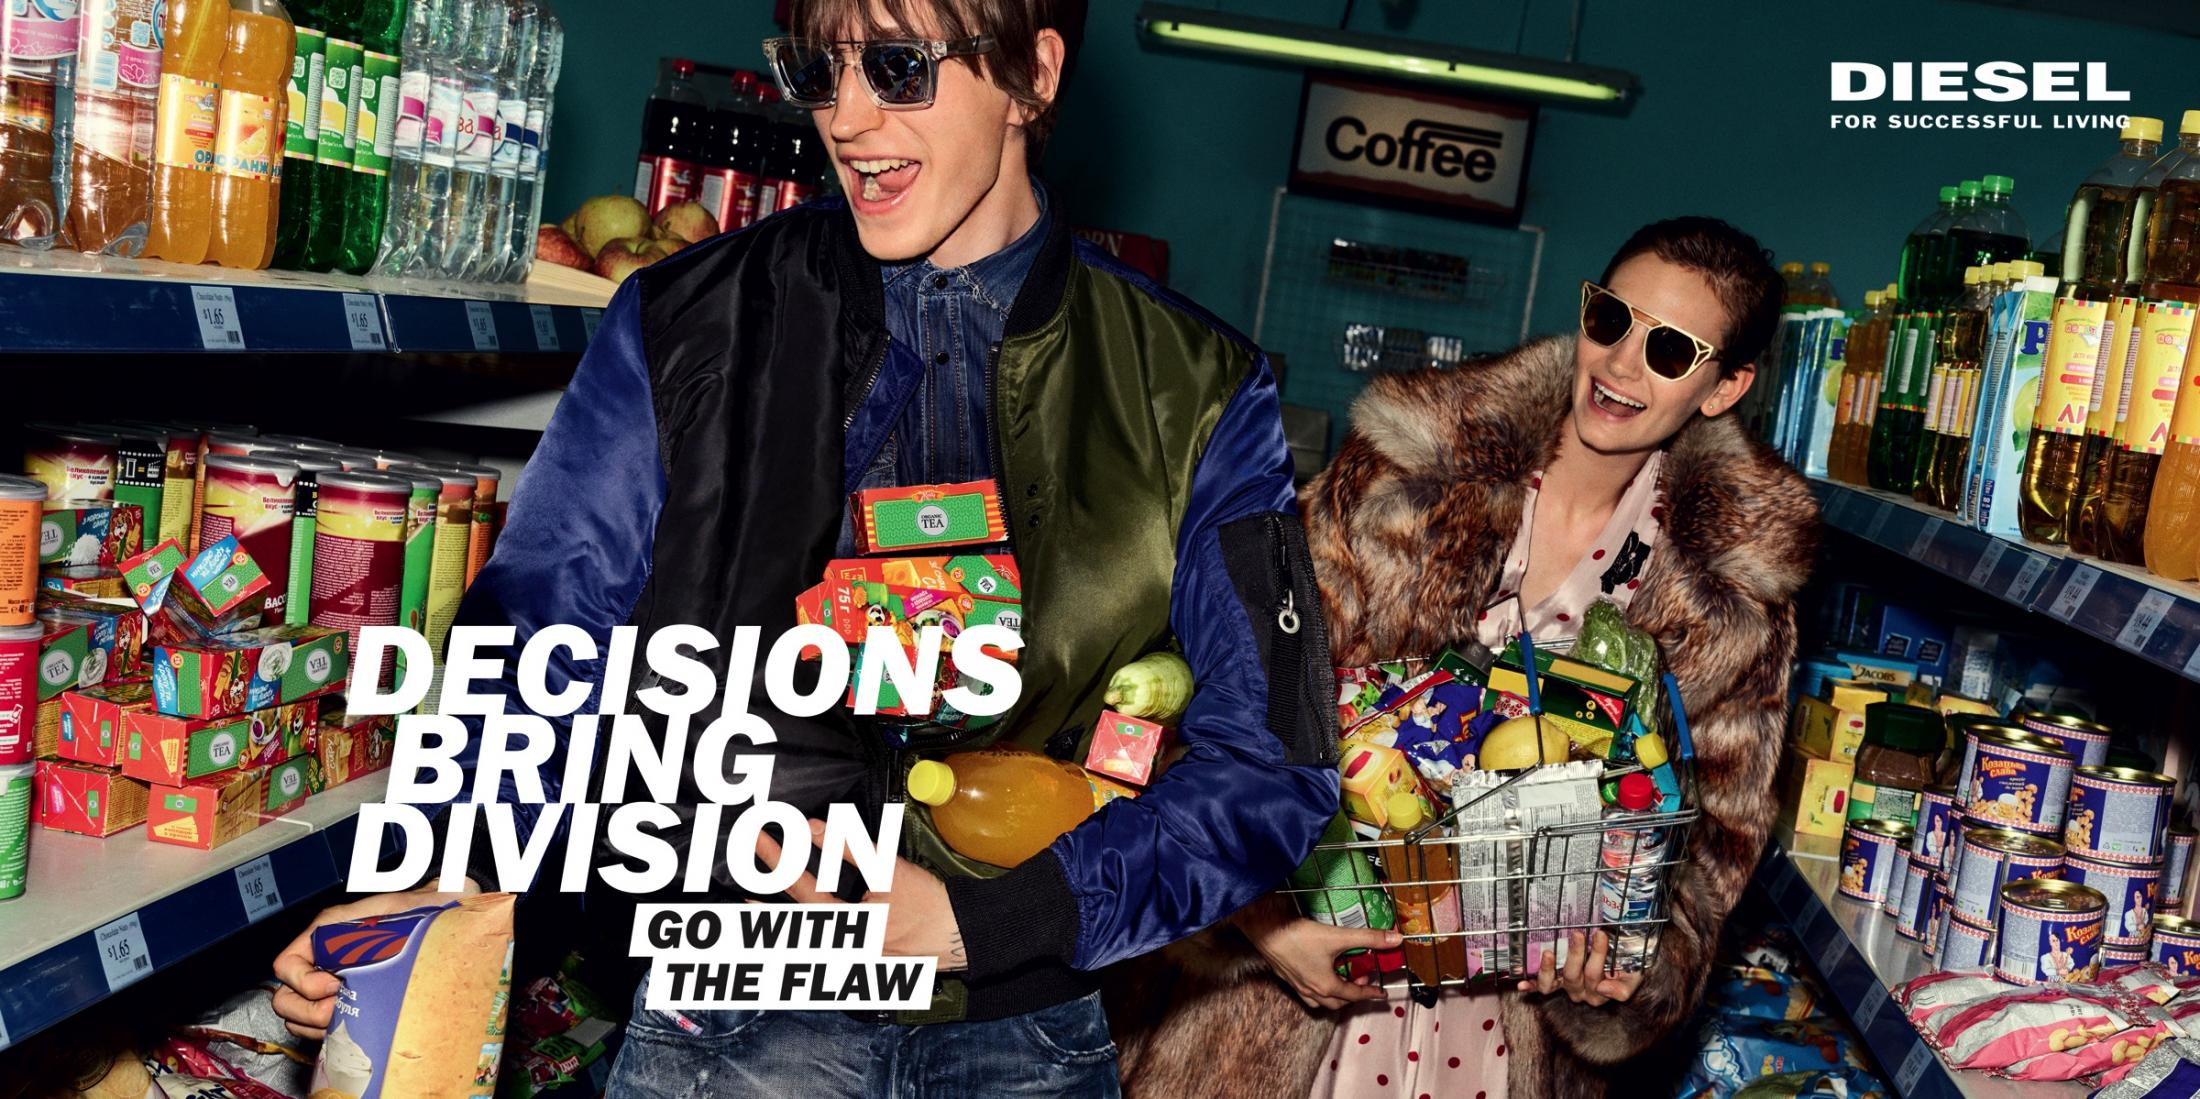 Diesel: Go With The Flaw - Shopping